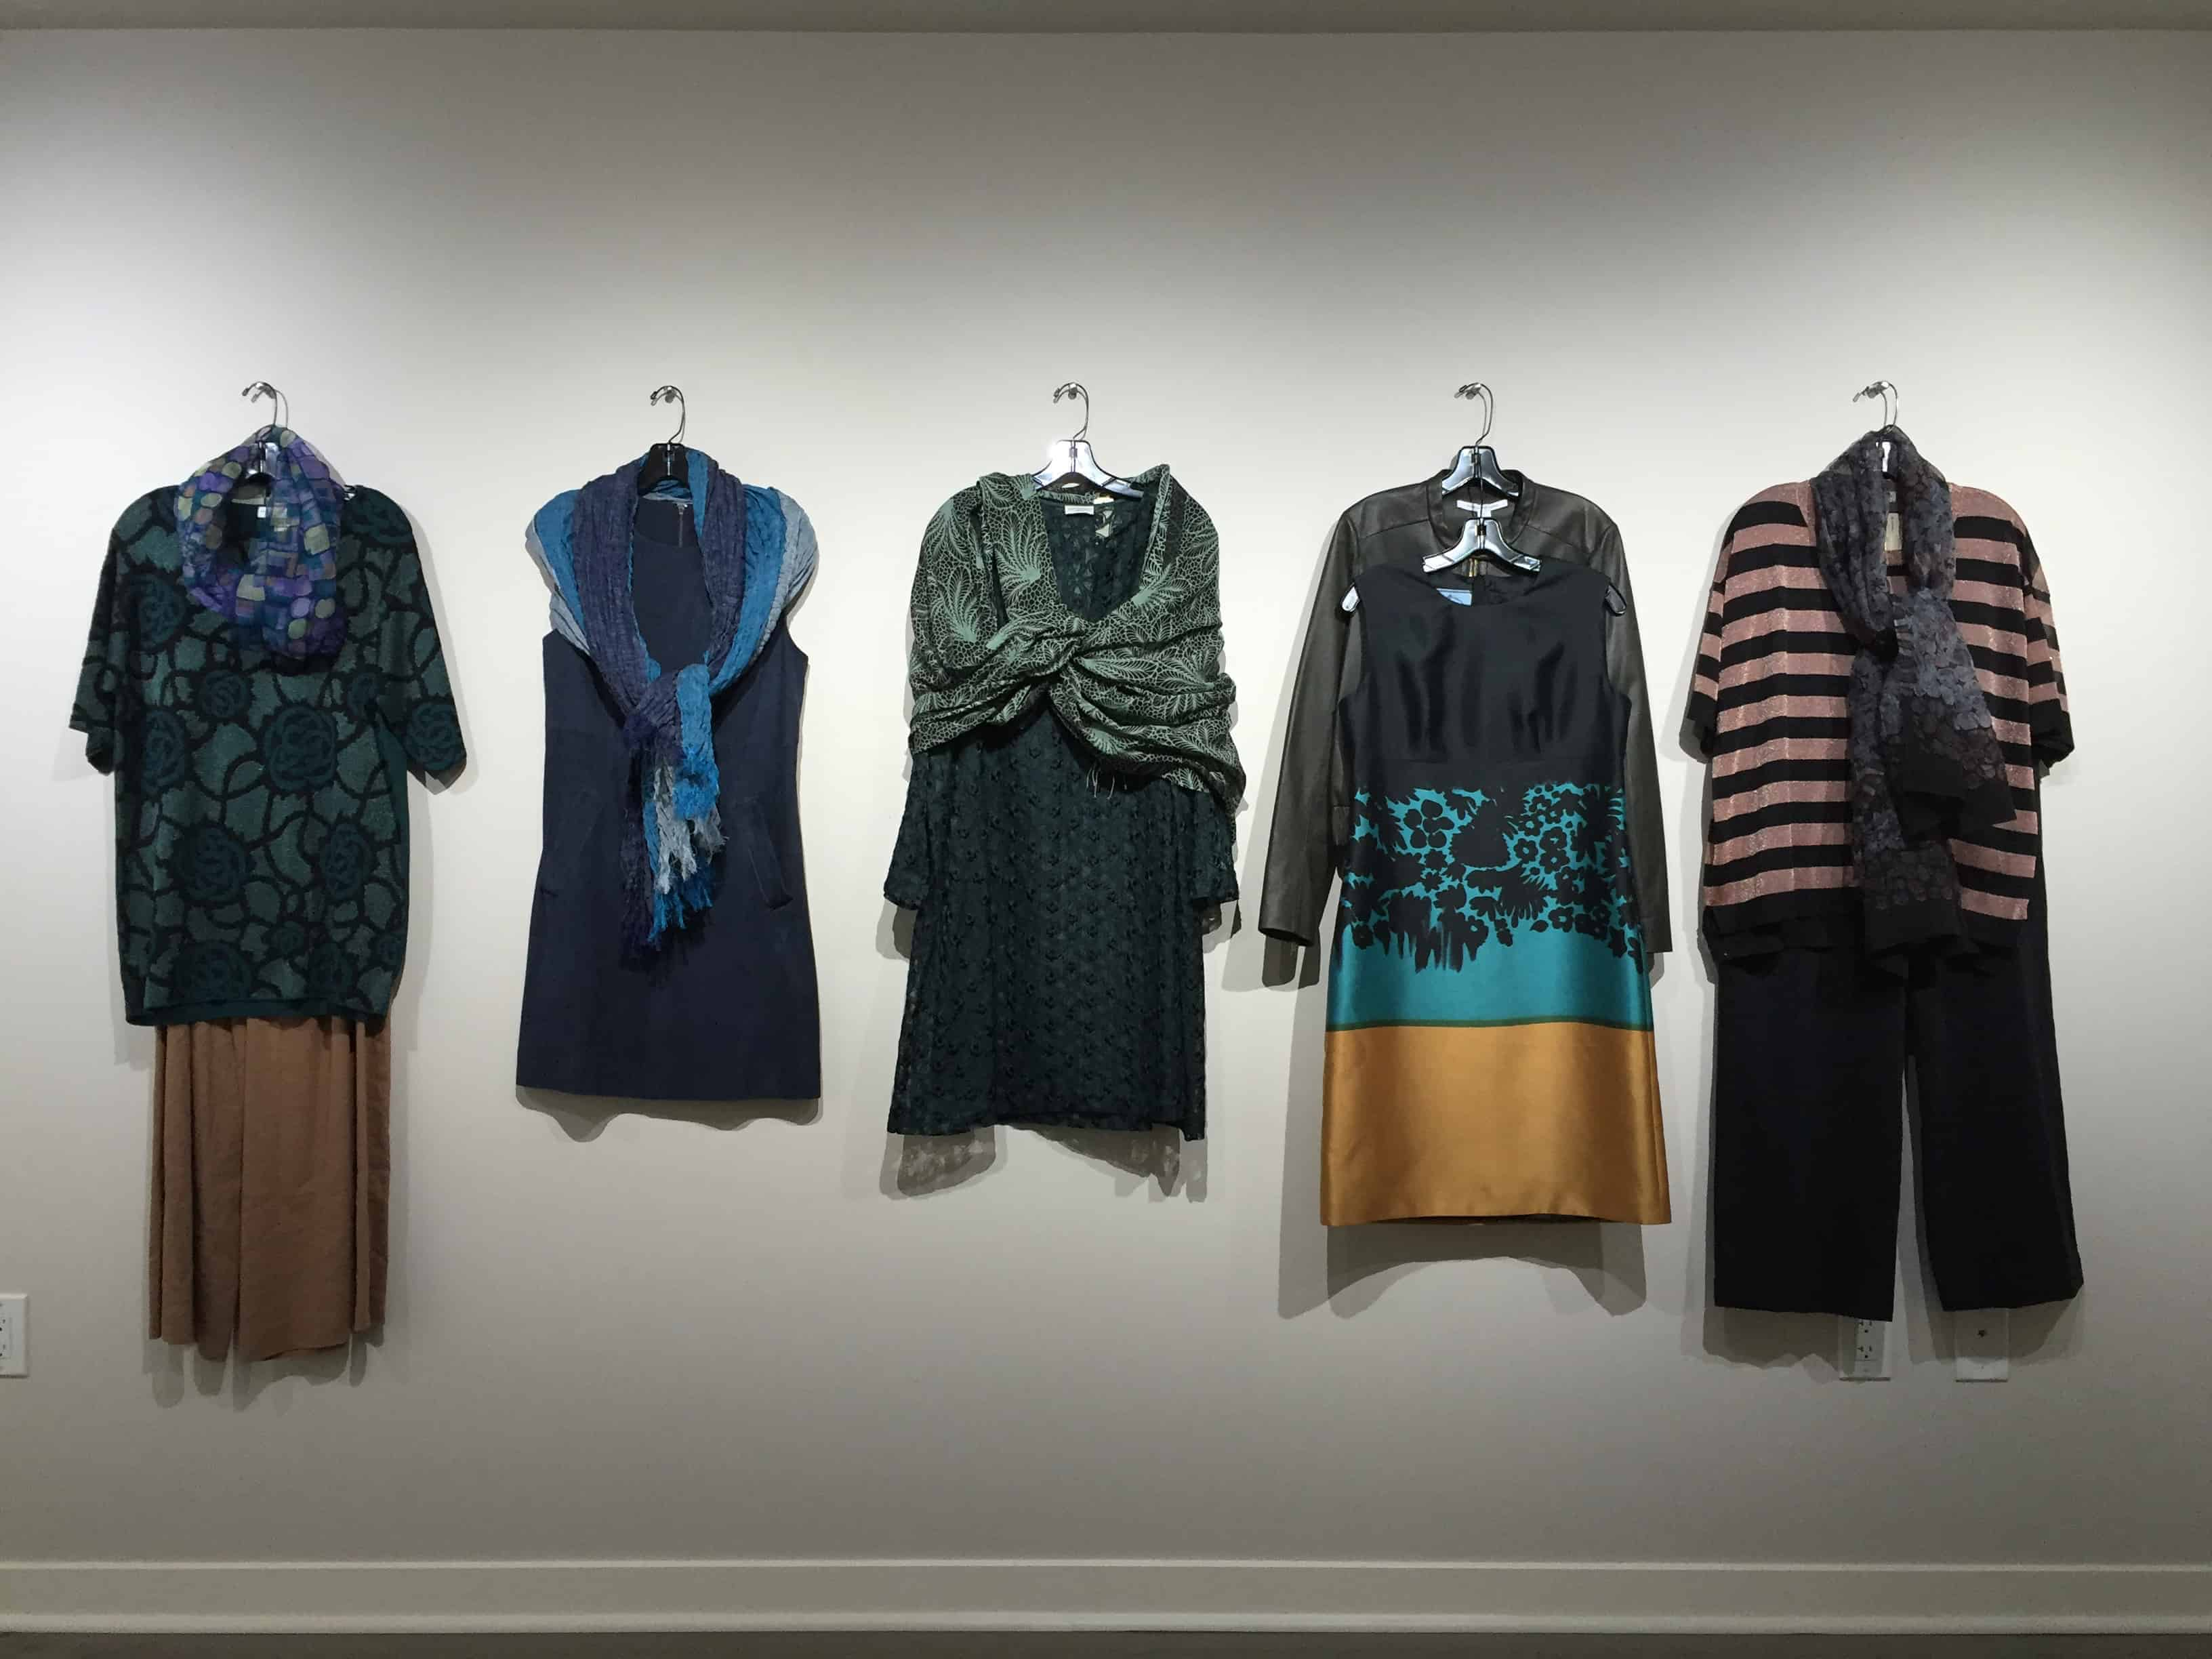 five womens' outfits hanging on a wall